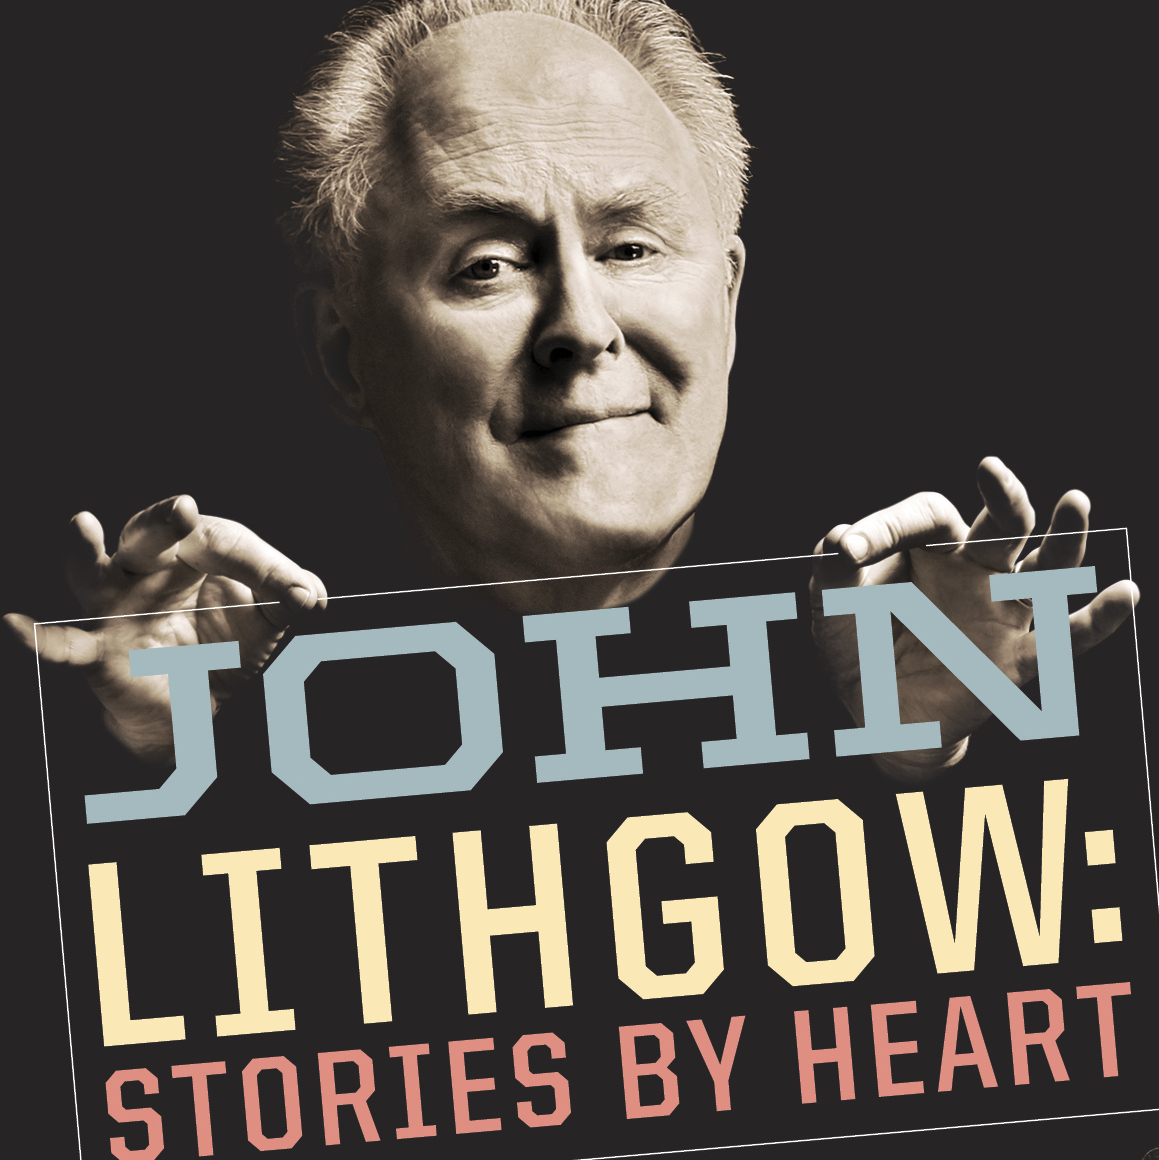 John Lithgow Showing And Telling Stories By Heart On Broadway